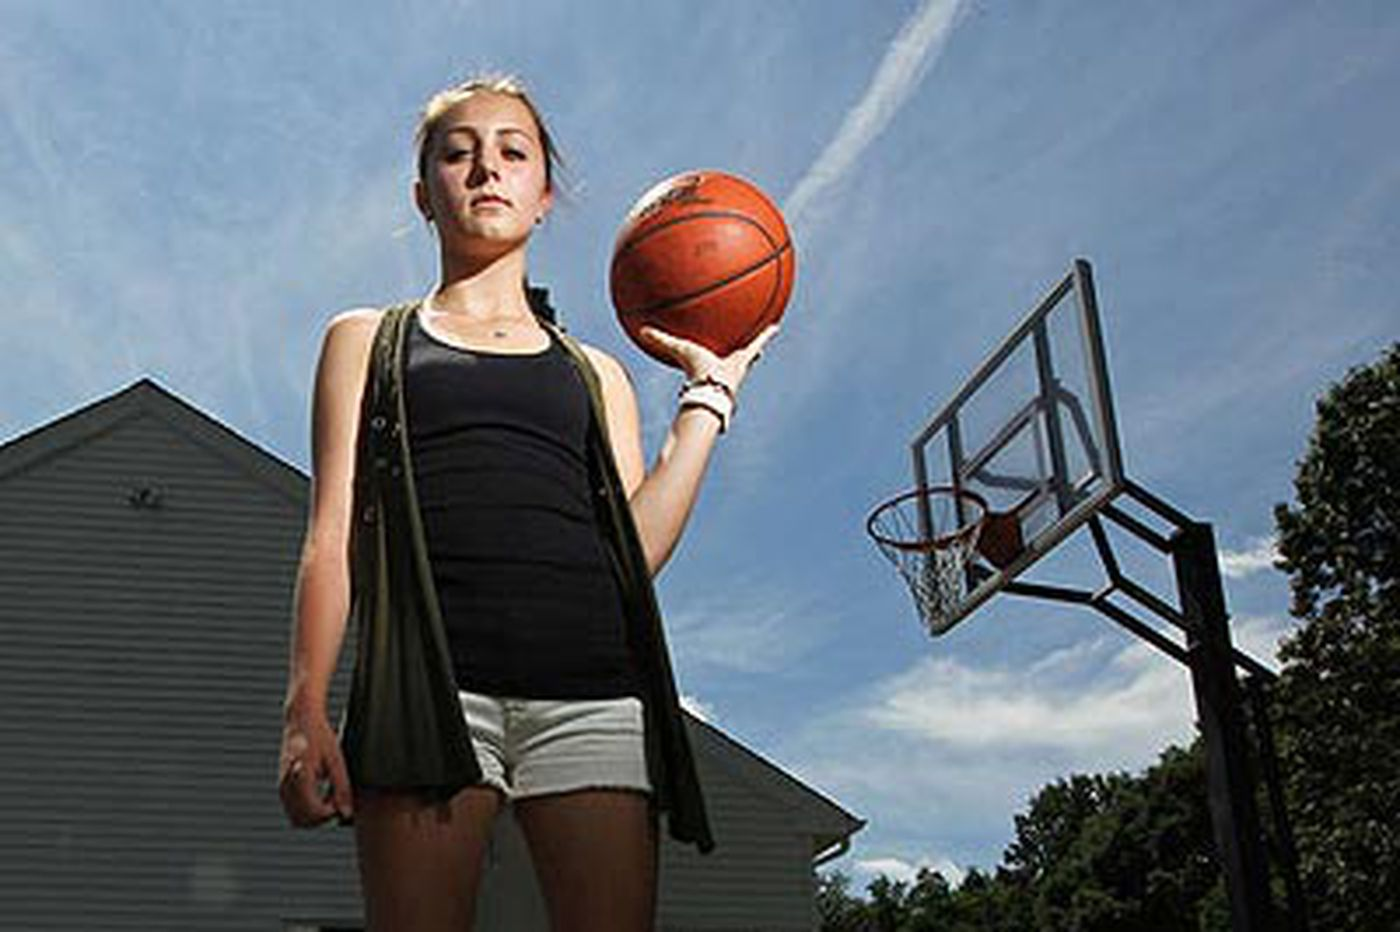 New Pa. safeguards against youth concussions kick in today